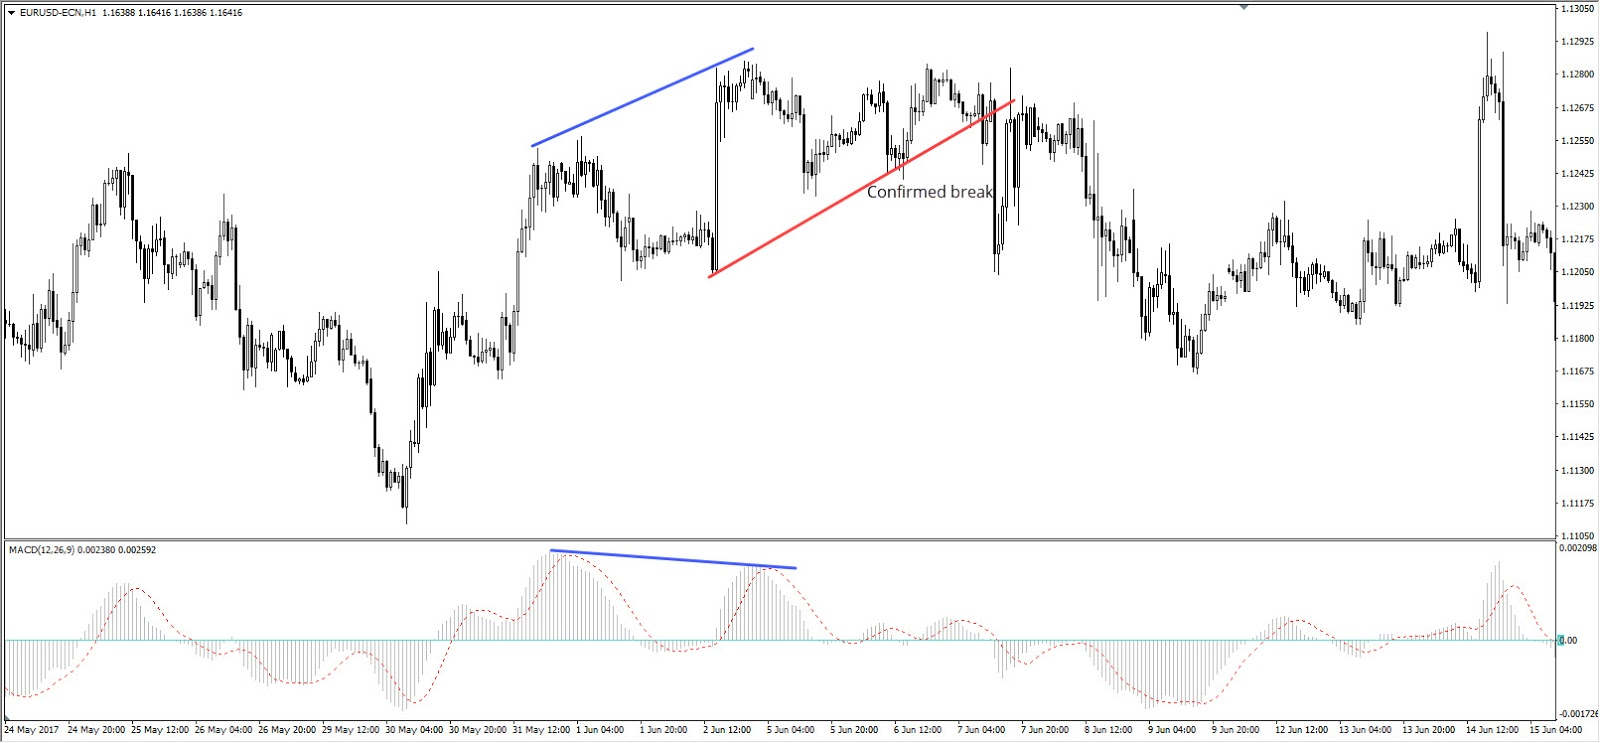 bearish divergence with a trend line breakout